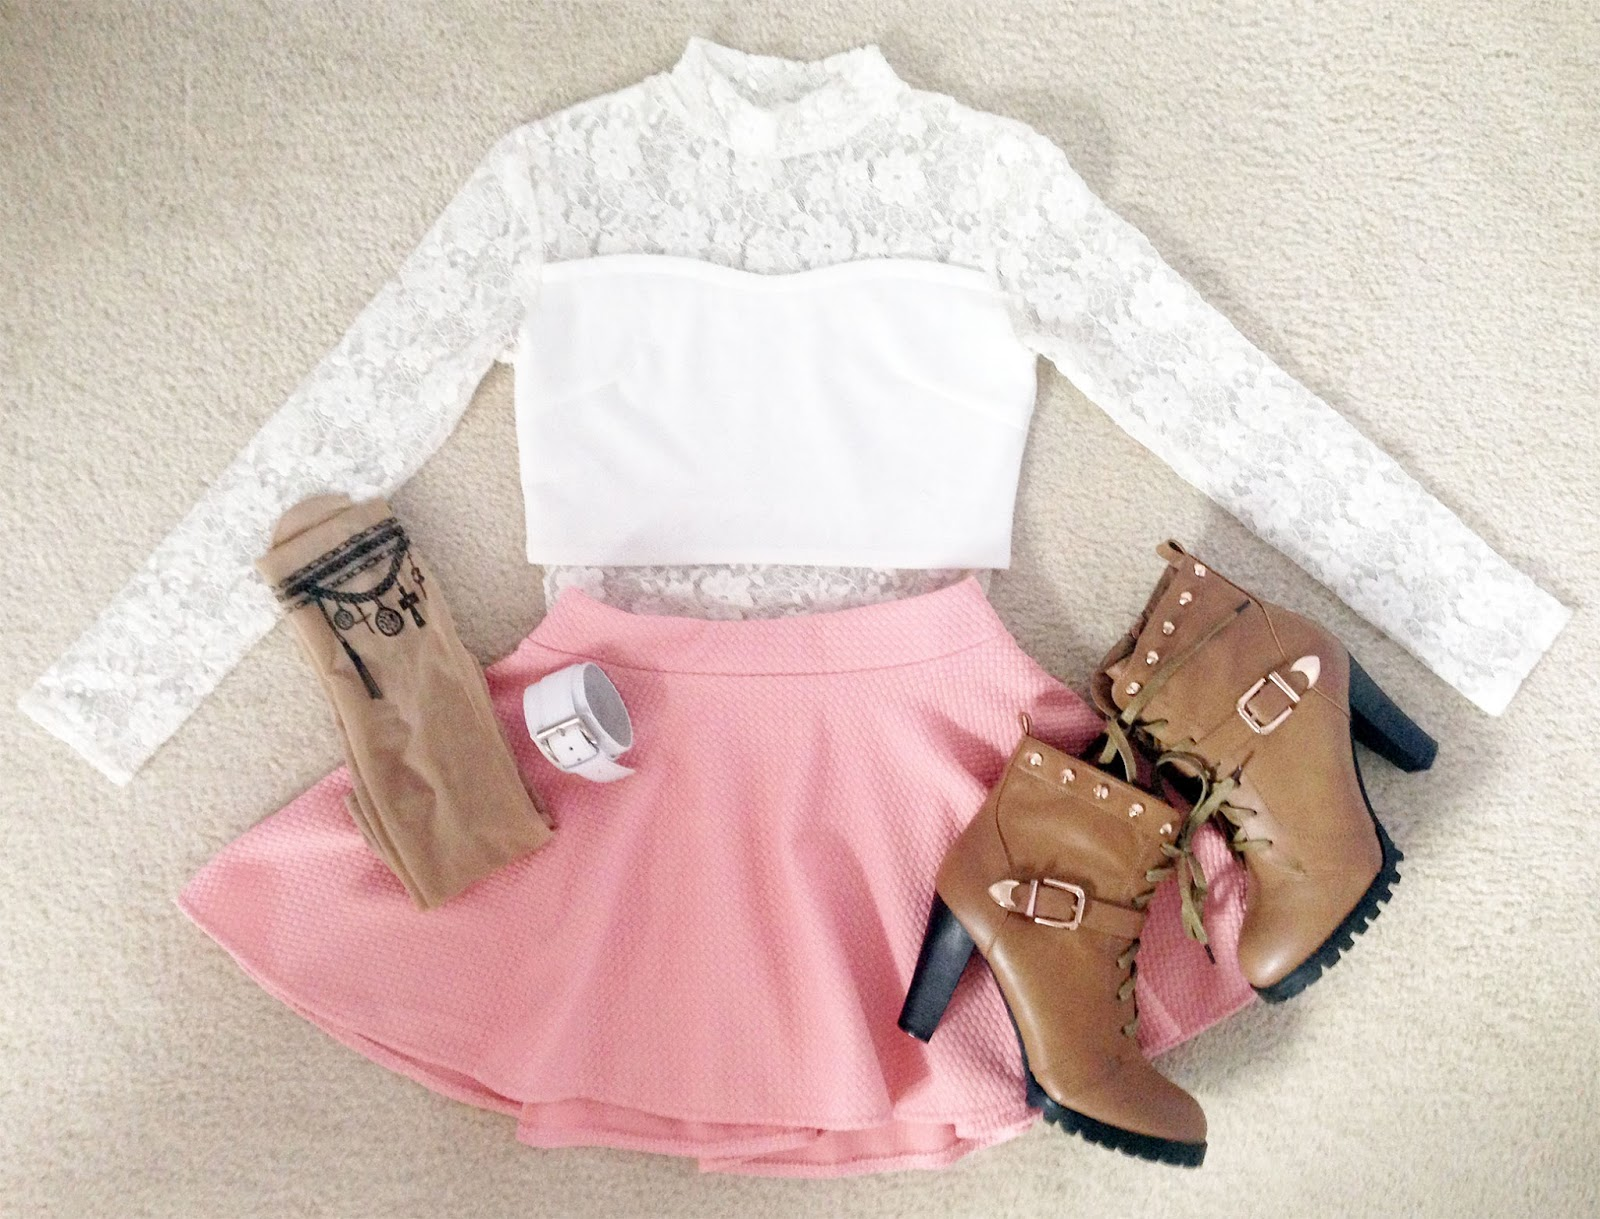 Layout of Chicnova pastel pink skater skirt, Snidel lace crop top, tattoo tights, leather bracelet, and high heeled brown boots for a brunch/tea-party inspired springtime look for fall!